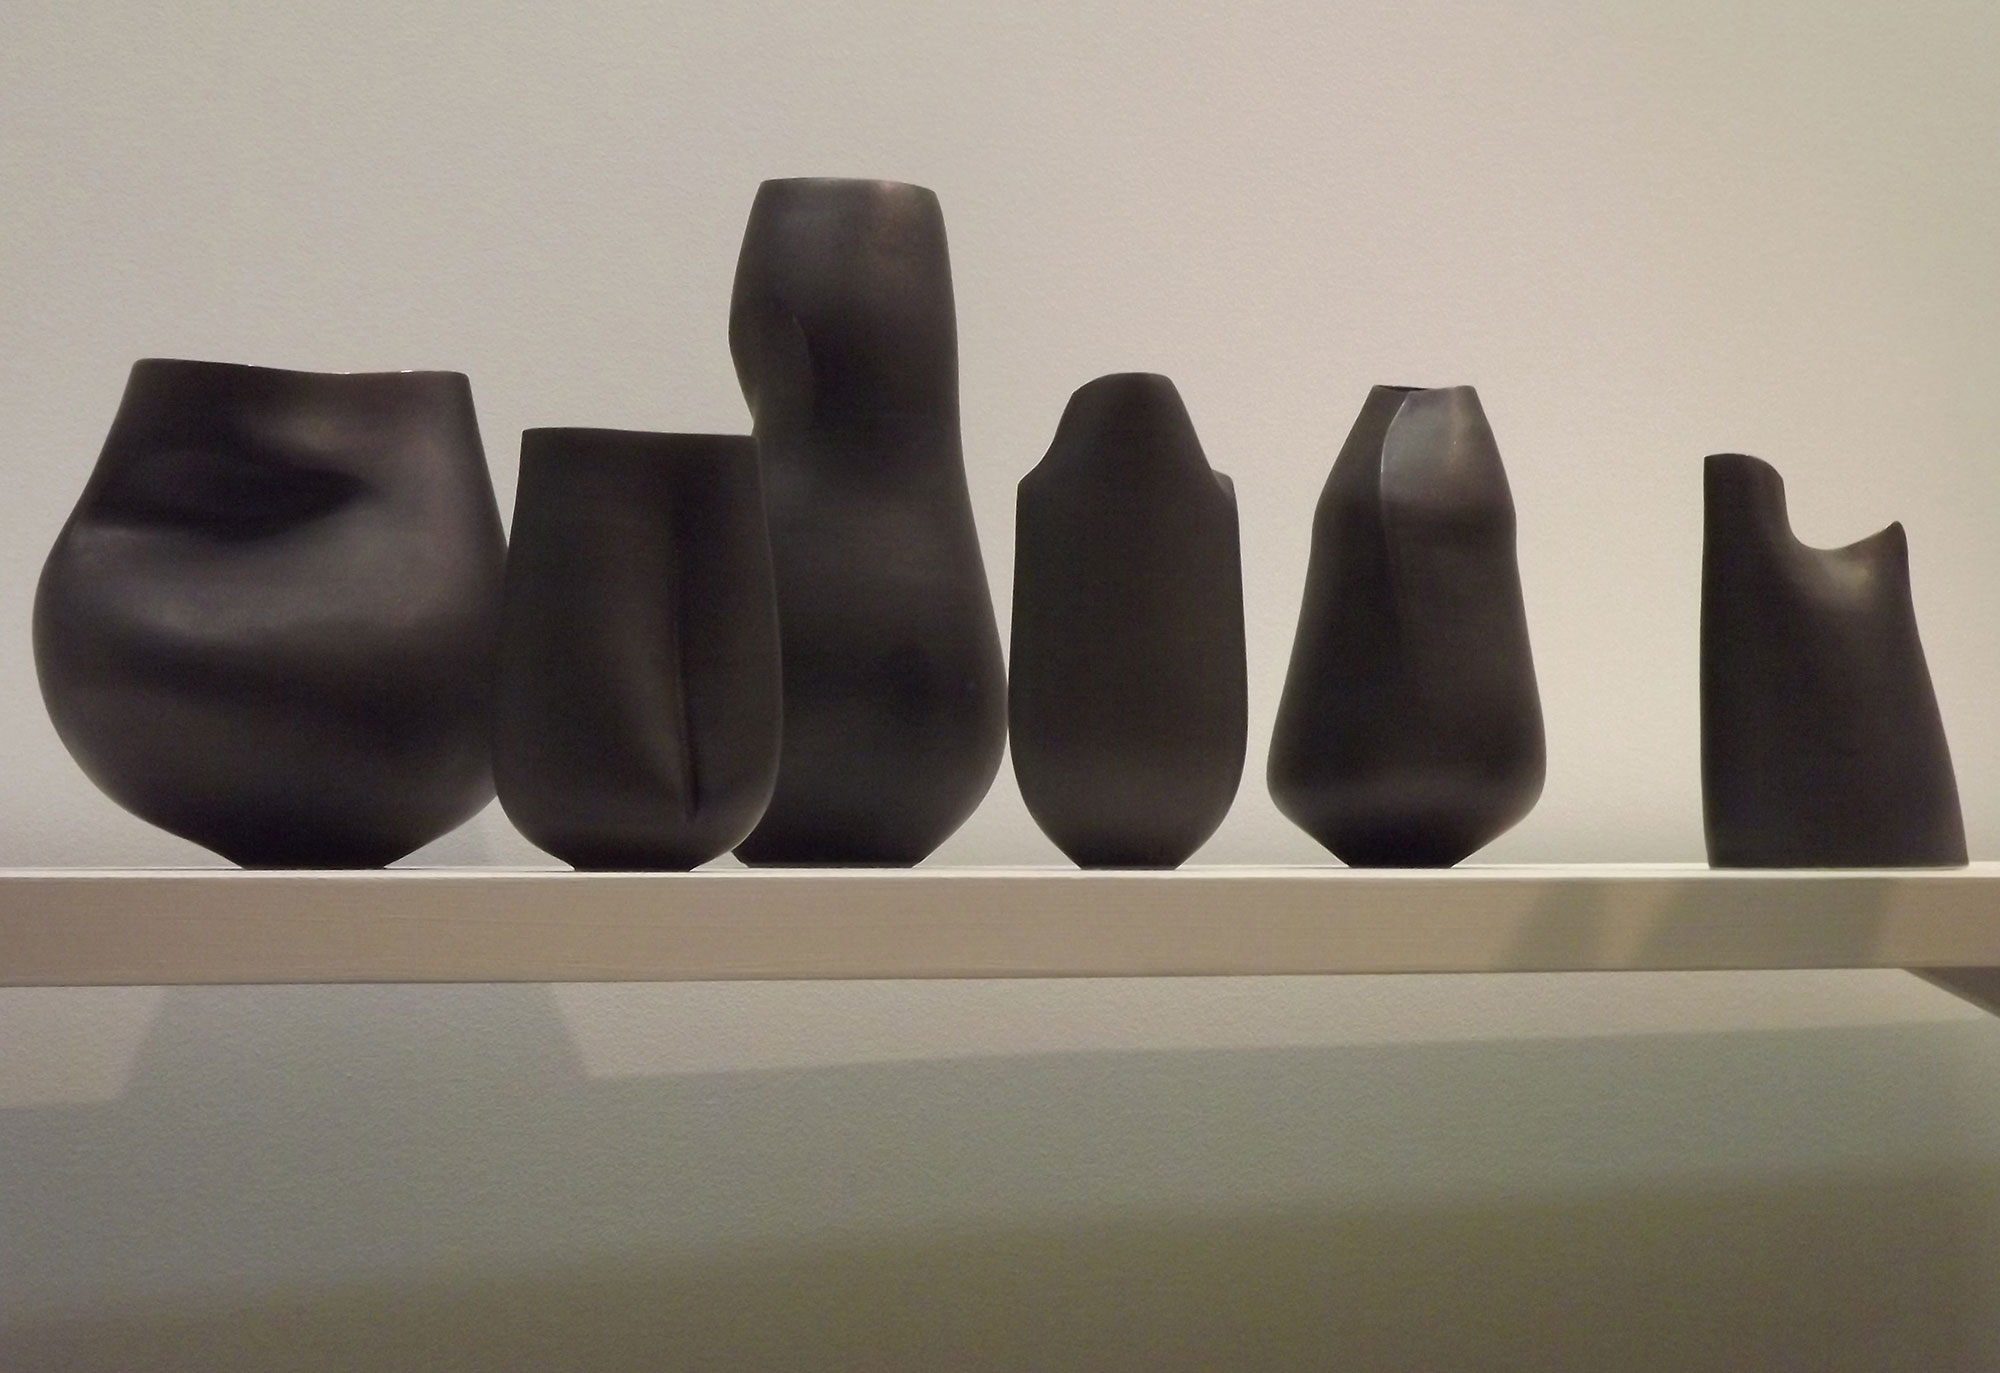 A collection of camber vessels, 2015 by Sara Flynn.